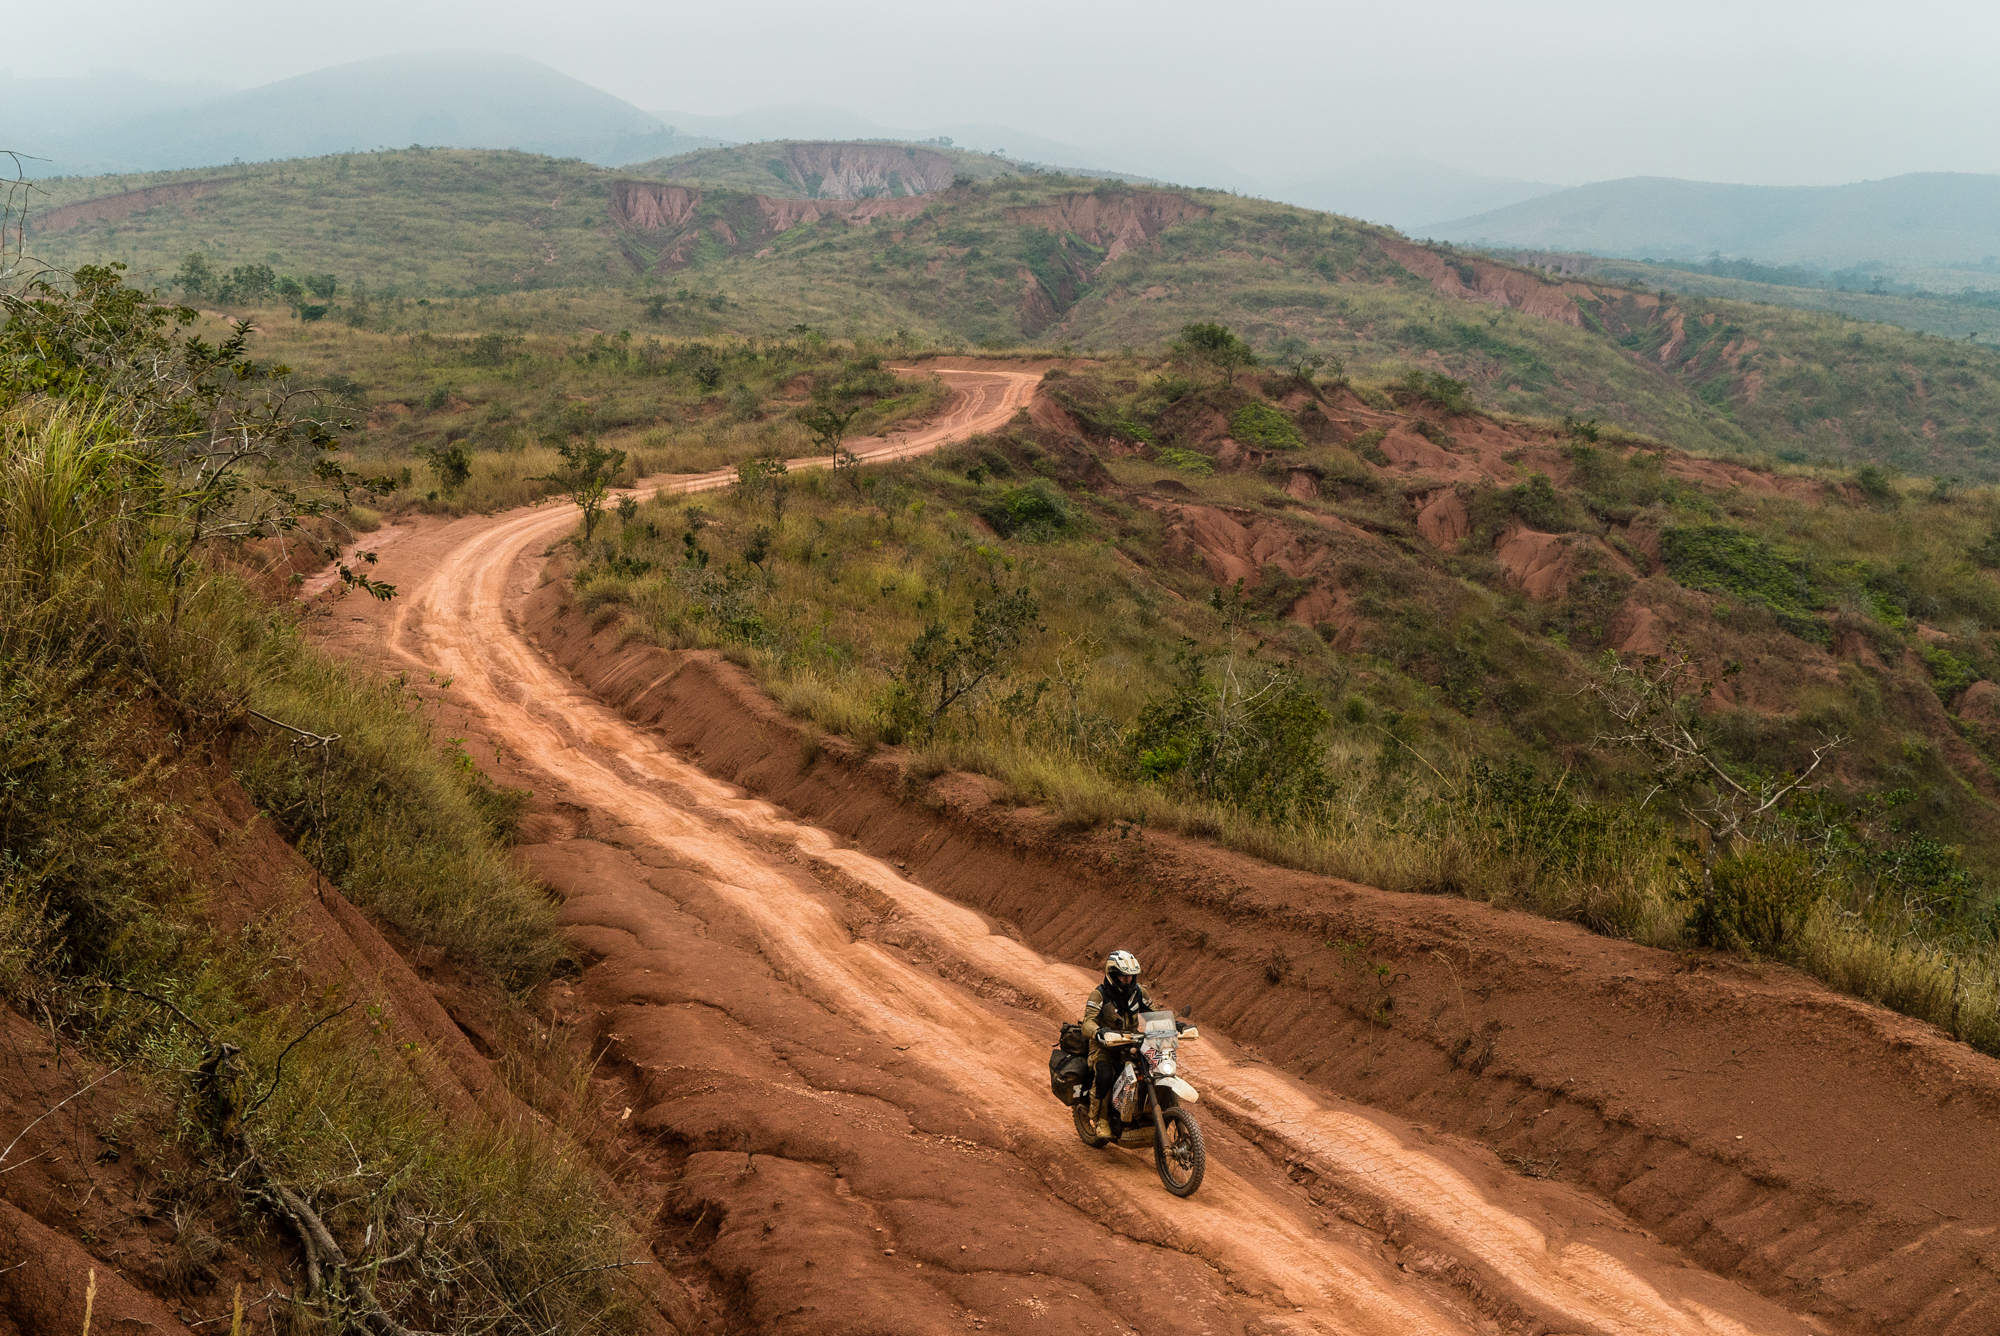 An etheral no-man's land making our way towards the Congo River were we crossed into the DRC.